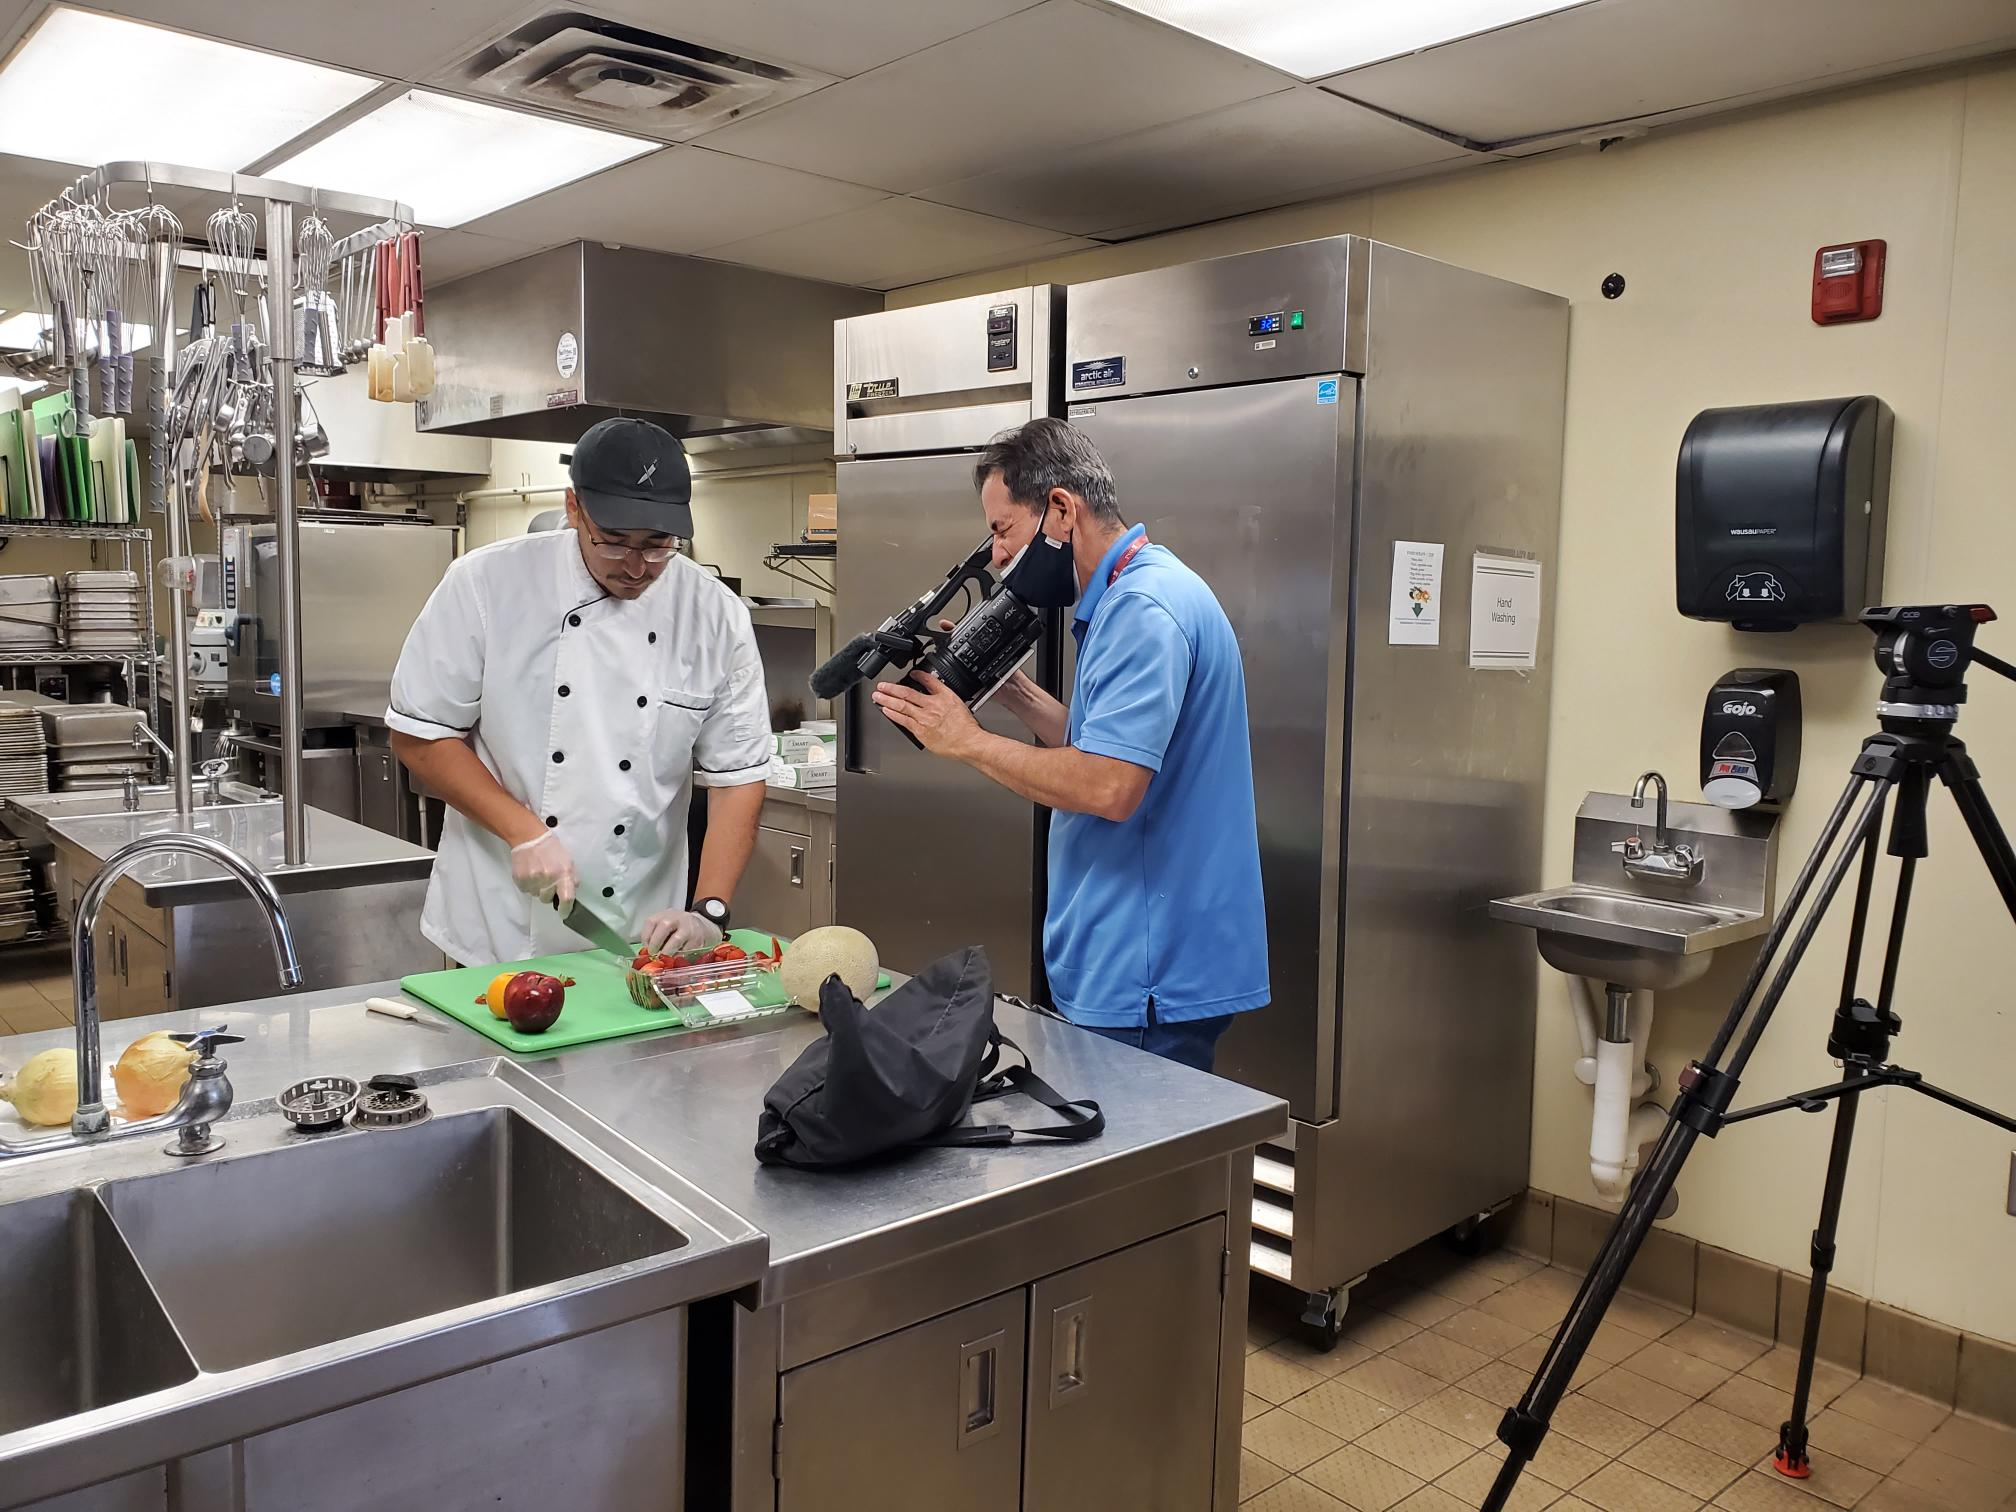 Art Ruiloba, right, films Gilbert Morales, a New Mexico State University alumnus who graduated from the School of Hotel, Restaurant and Tourism Management, cutting fruit for a new promotional video for the HRTM program. (Courtesy)